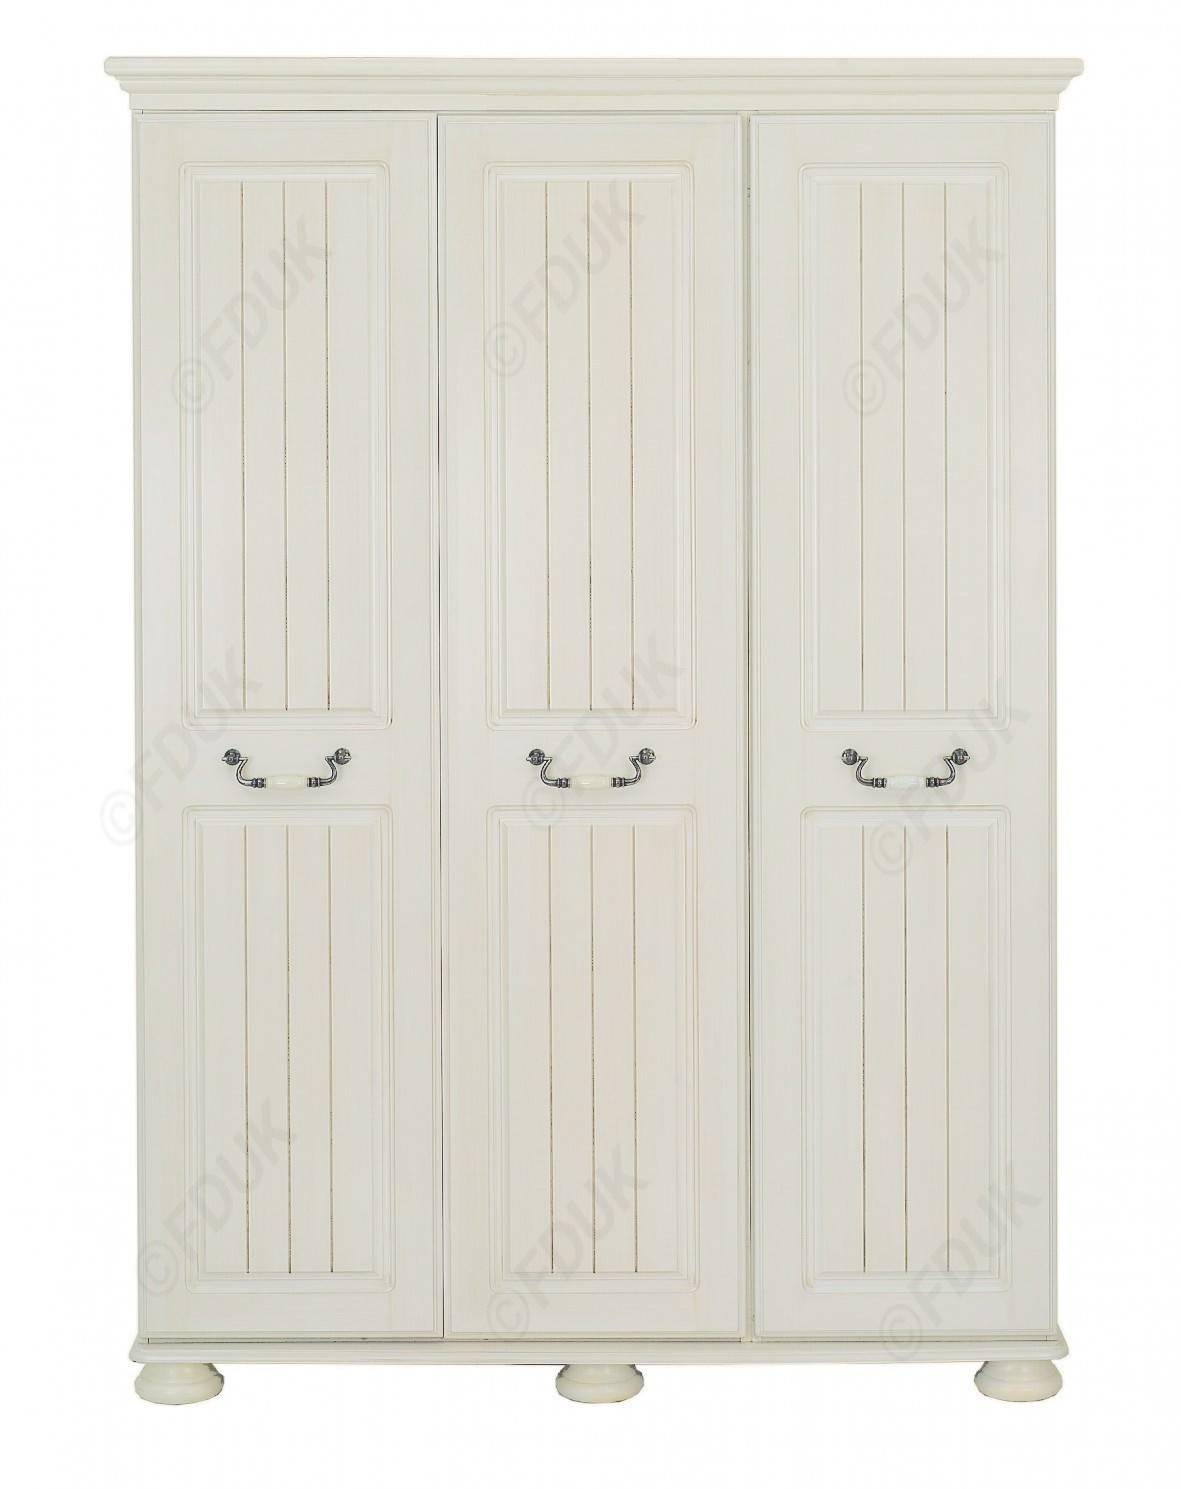 Popular Photo of Signature Wardrobes